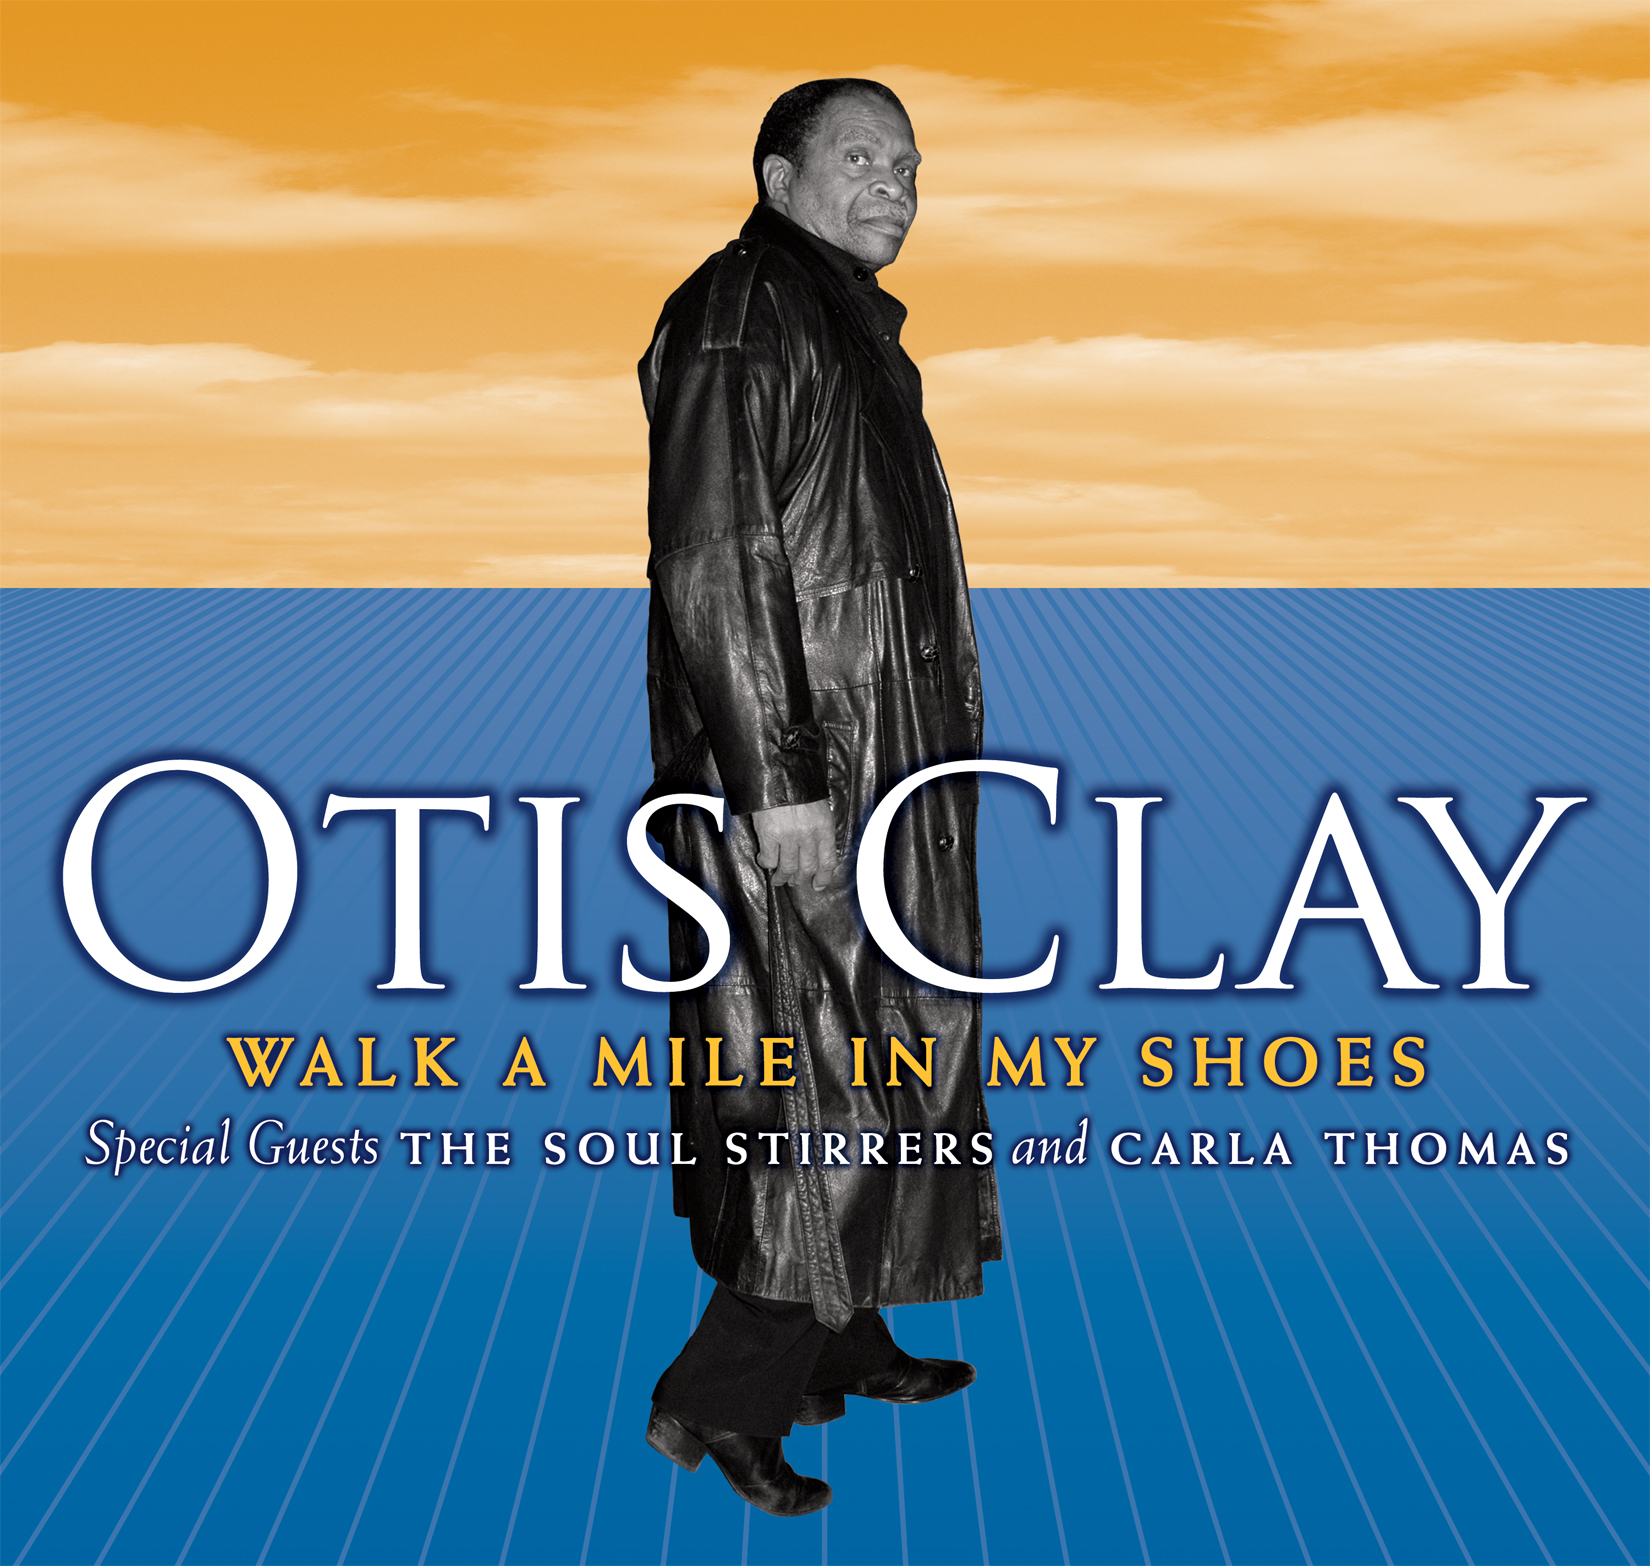 Walk A Mile In My Shoes Otis Clay